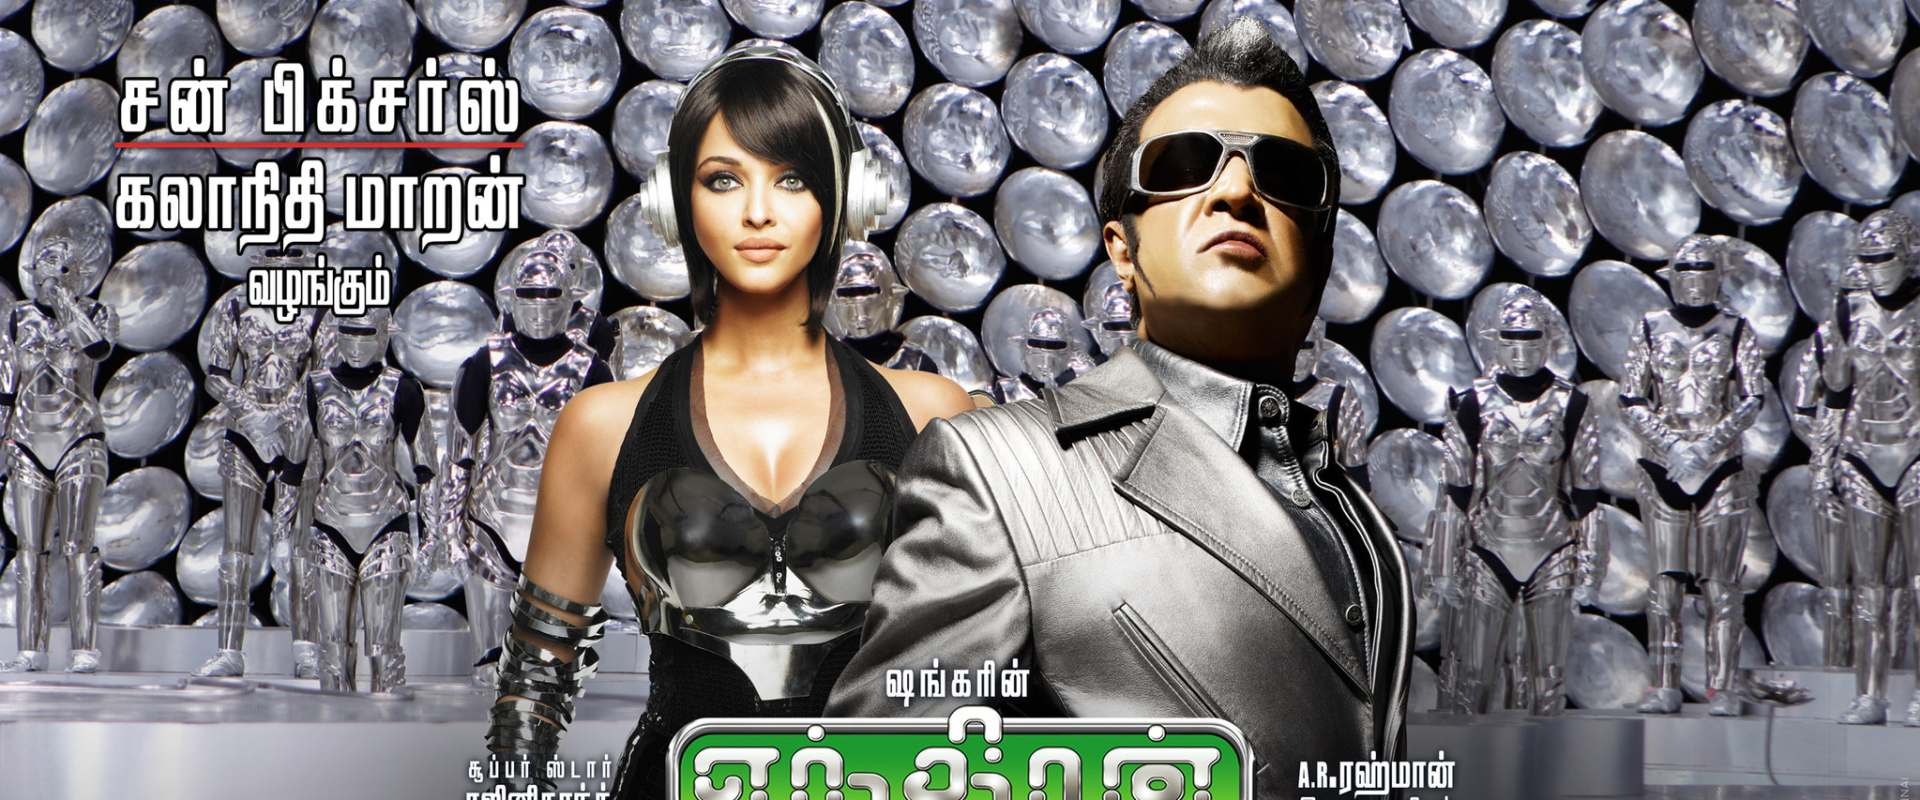 Enthiran background 2